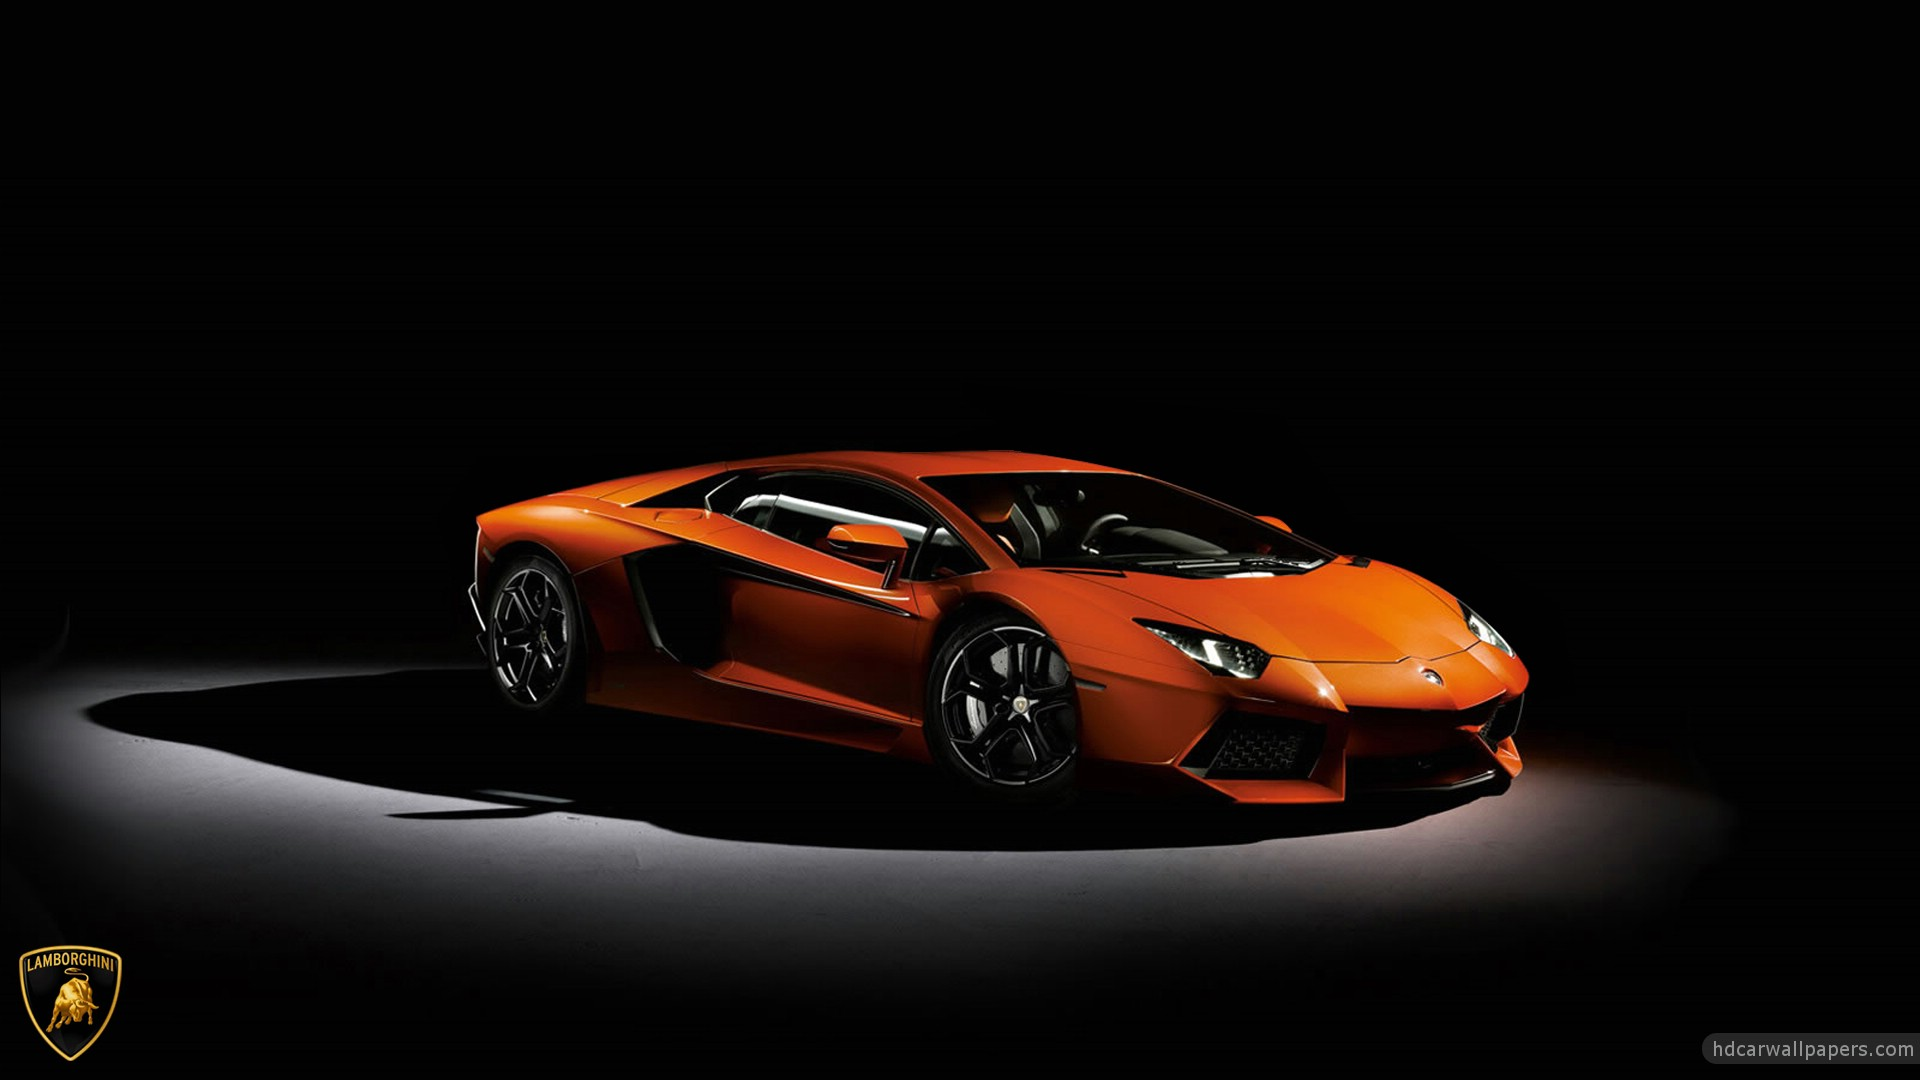 Lamborghini Aventador HD Wallpaper  HD Car Wallpapers